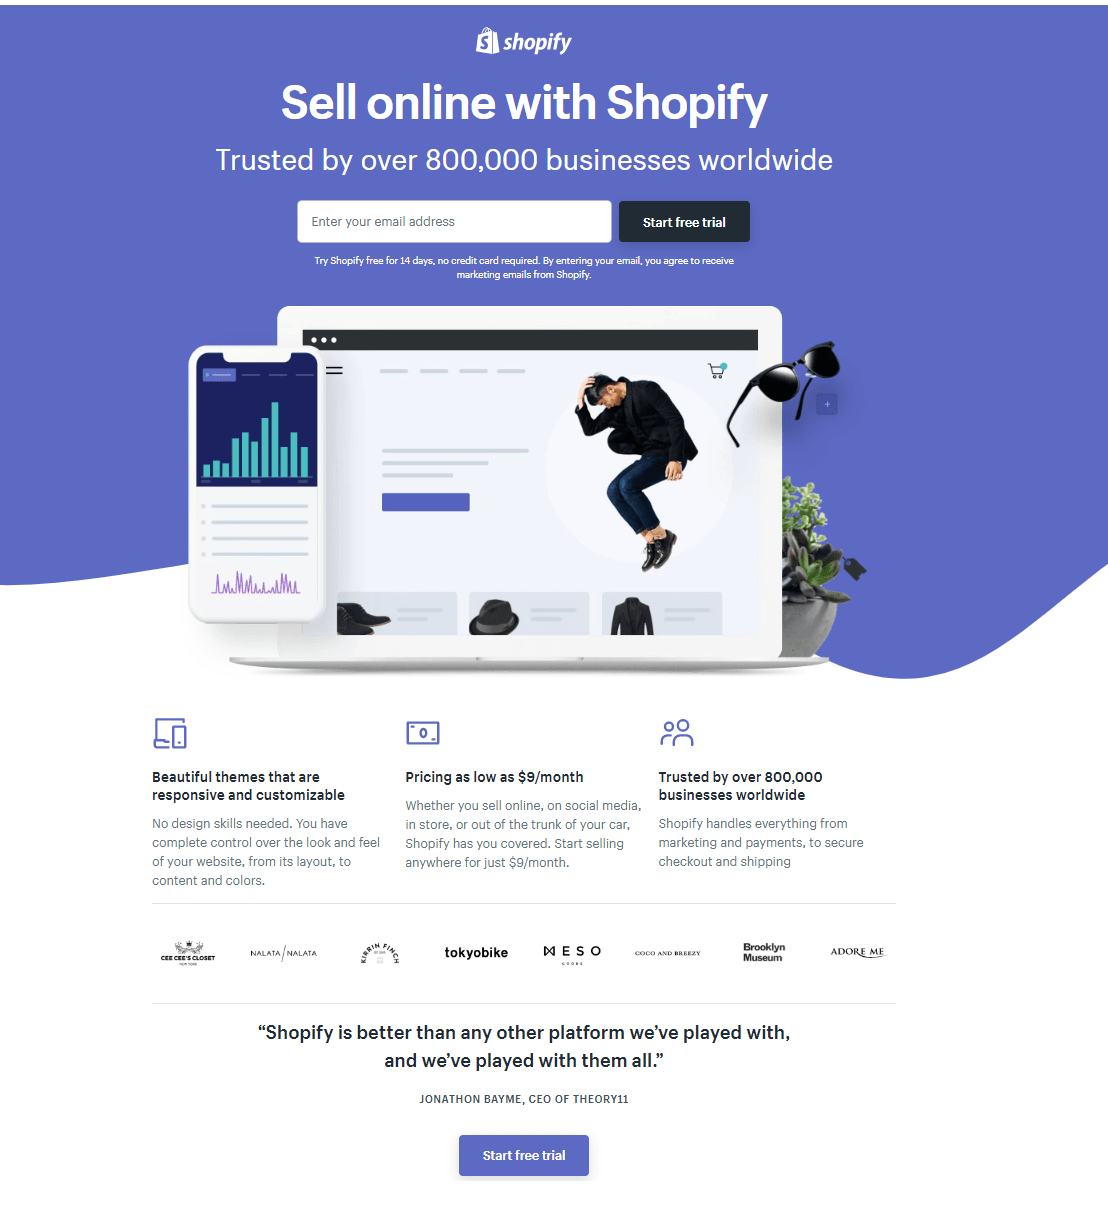 Shopify includes social proof on their landing page